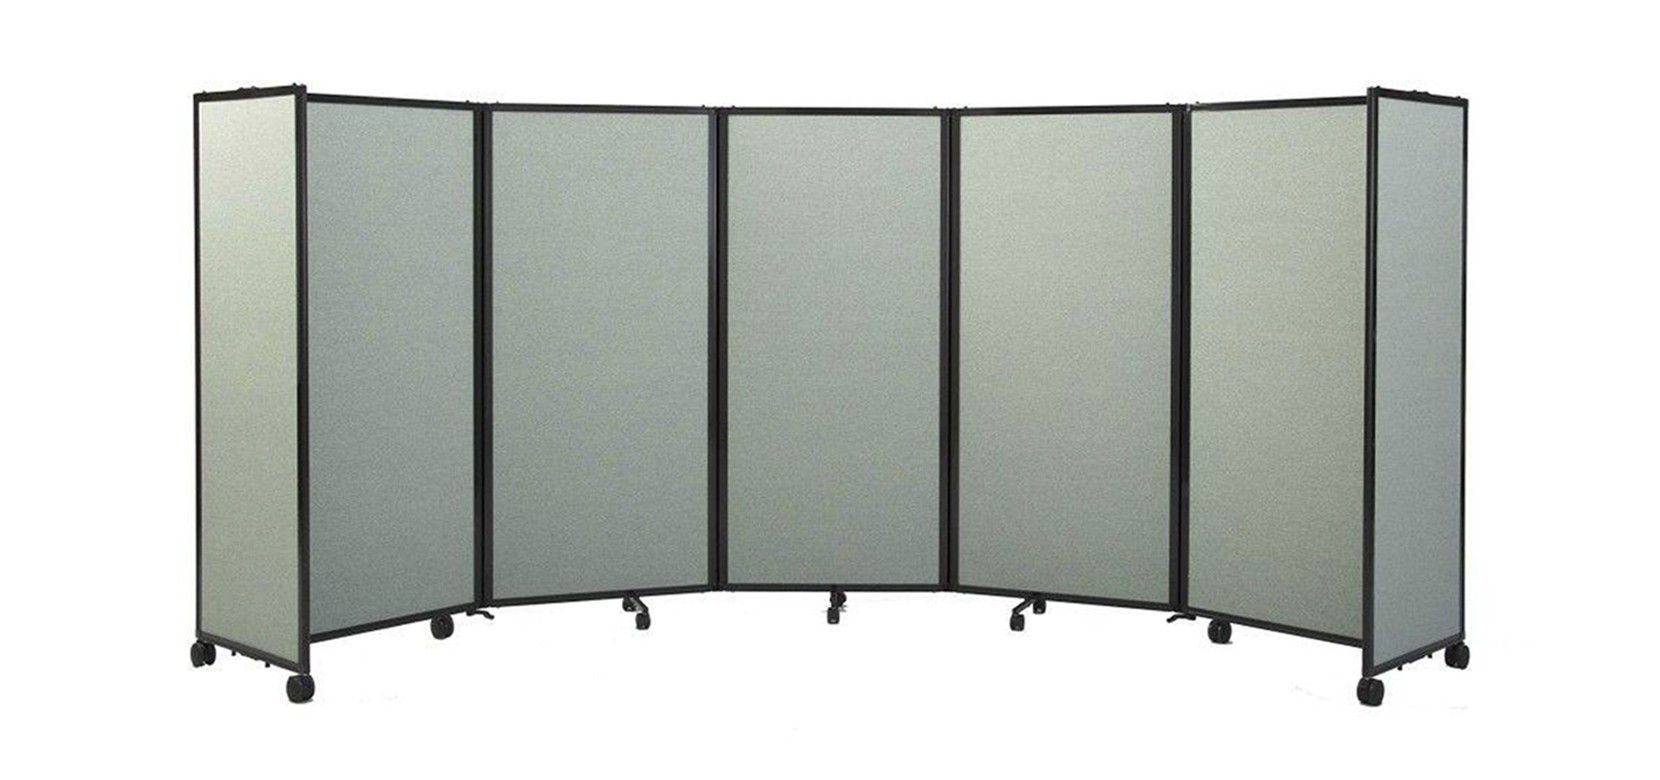 Room Dividers Home Depot 15 Best Accordion Room Dividers Ideas Bastet Portable